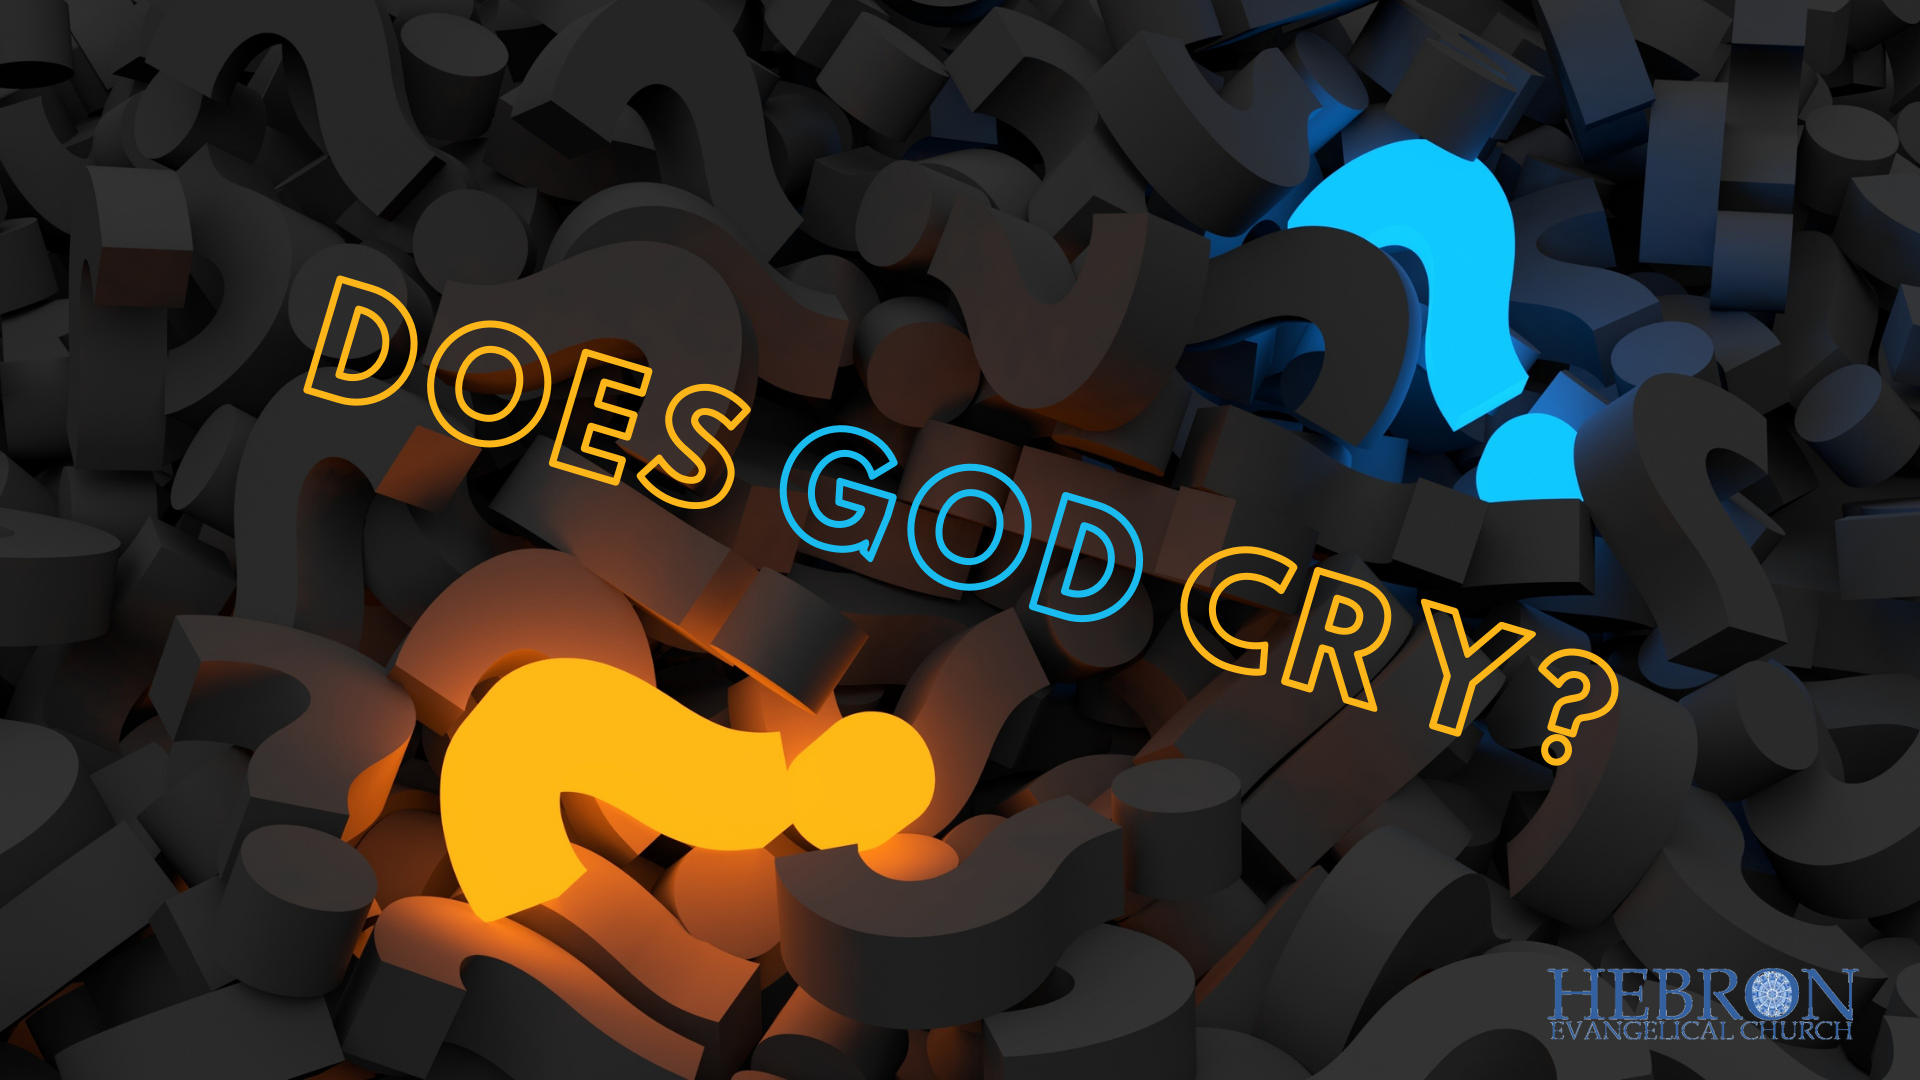 Does God cry